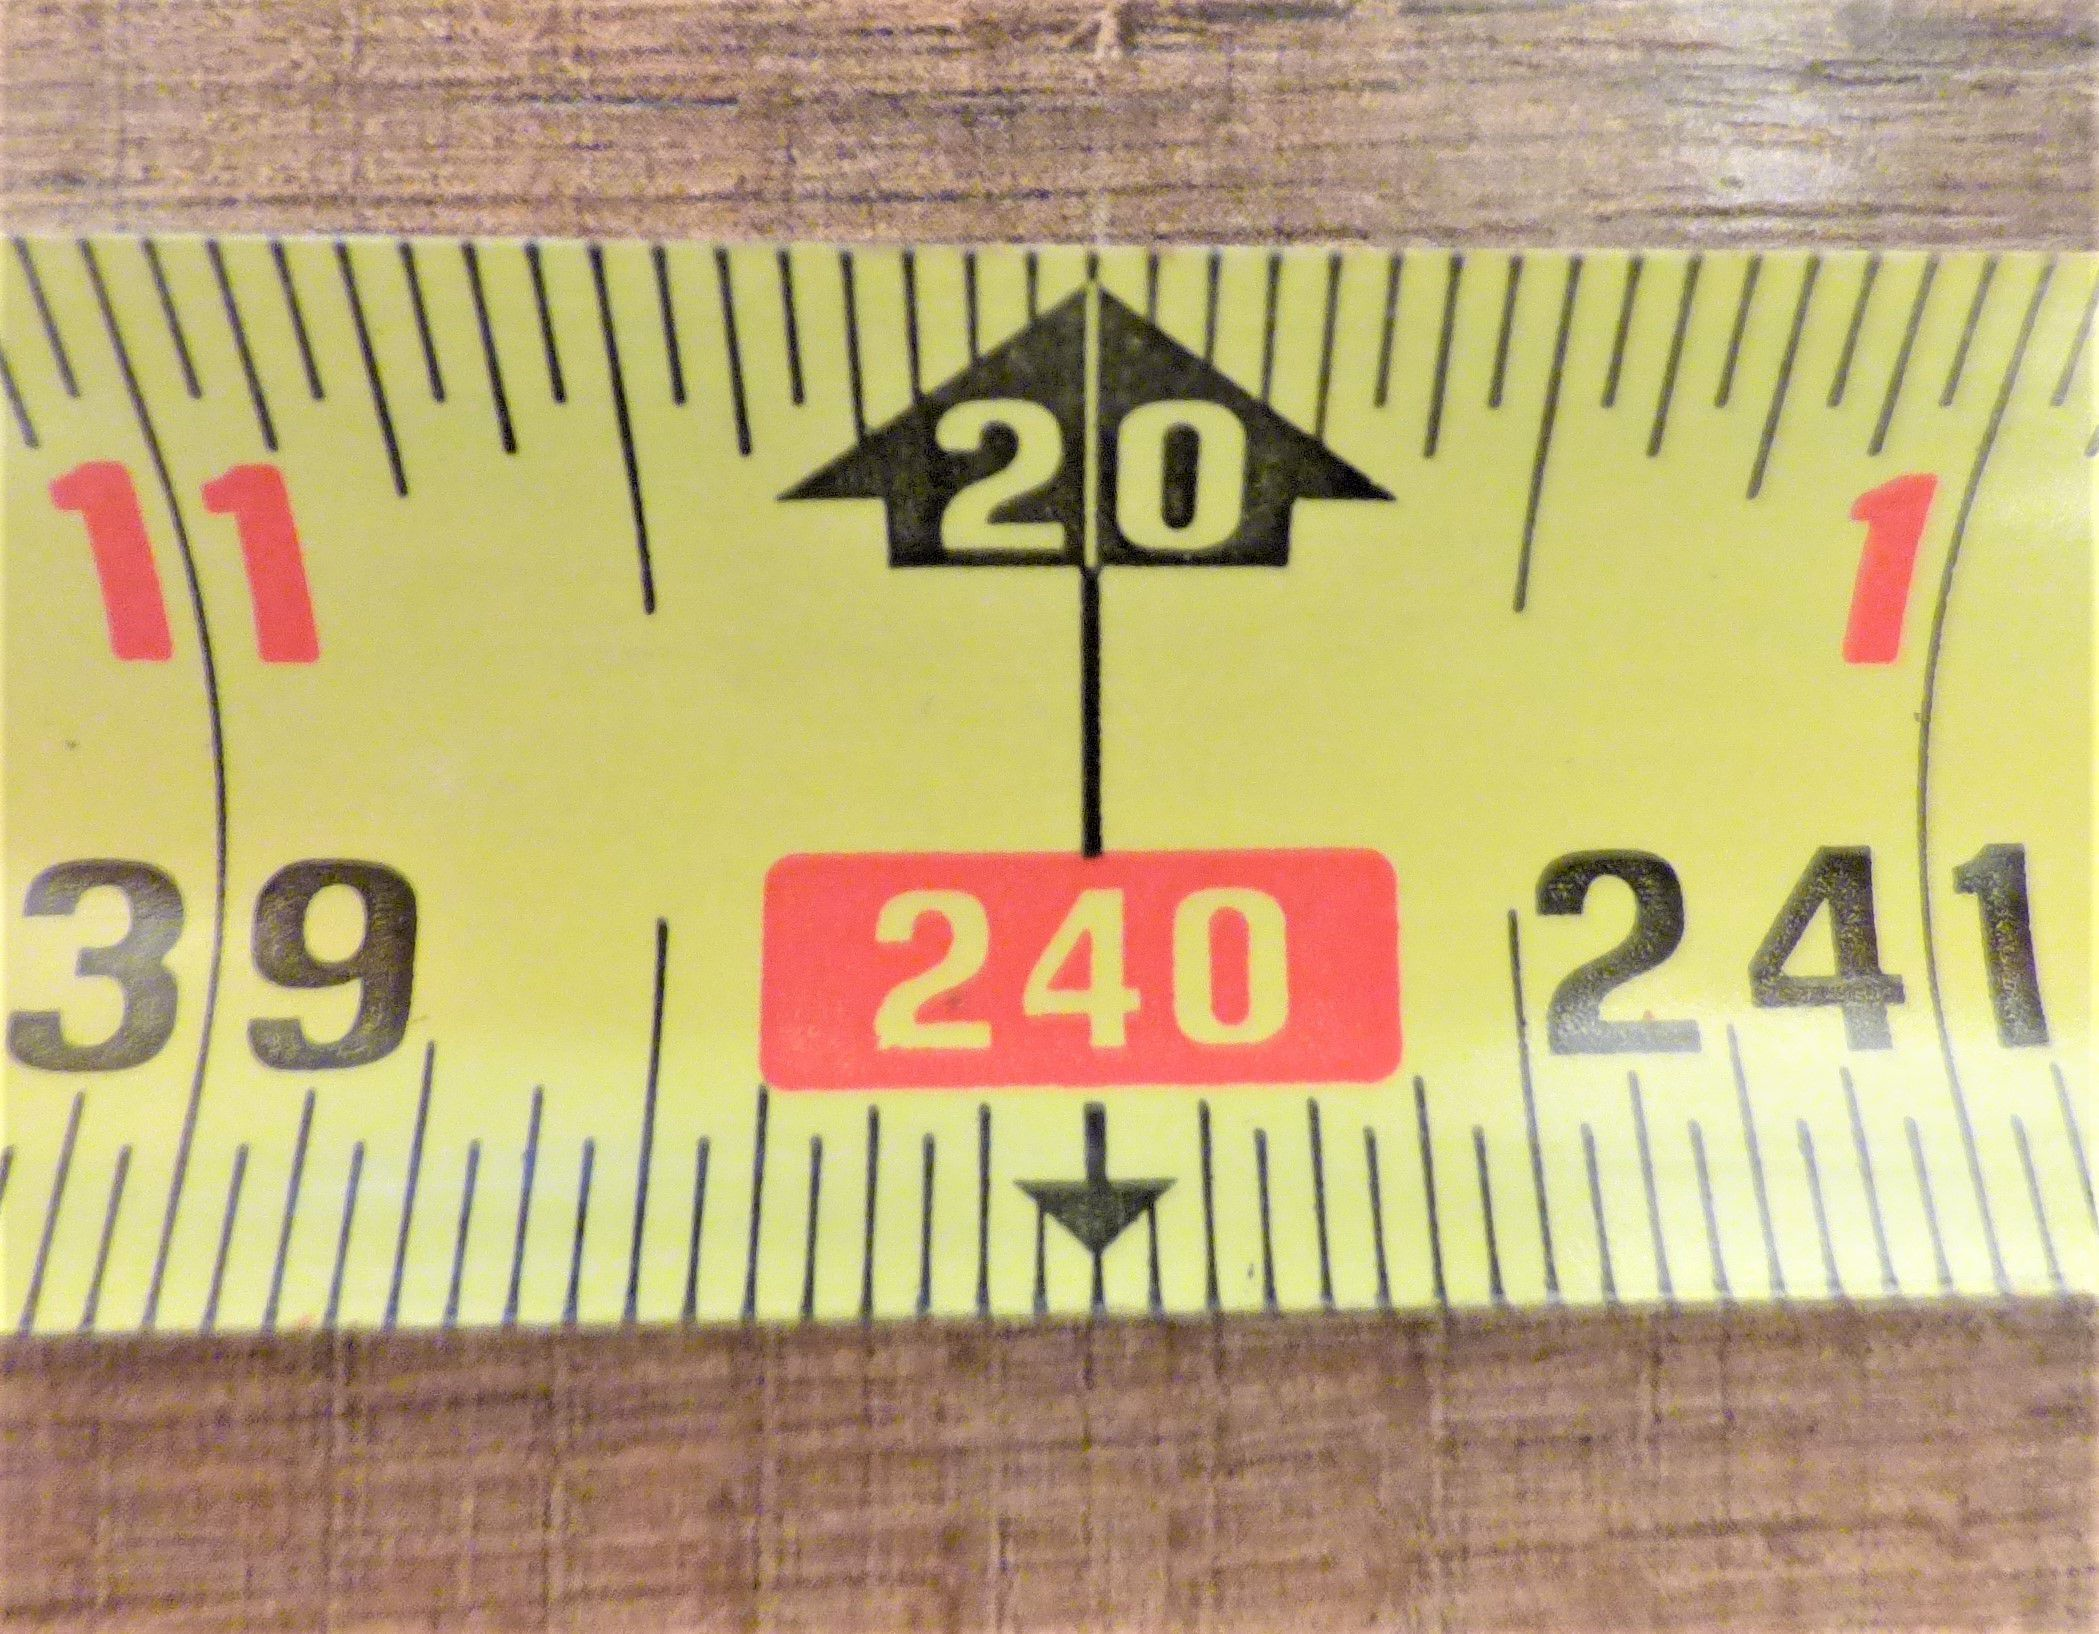 How To S Wiki 88 How To Read A Tape Measure